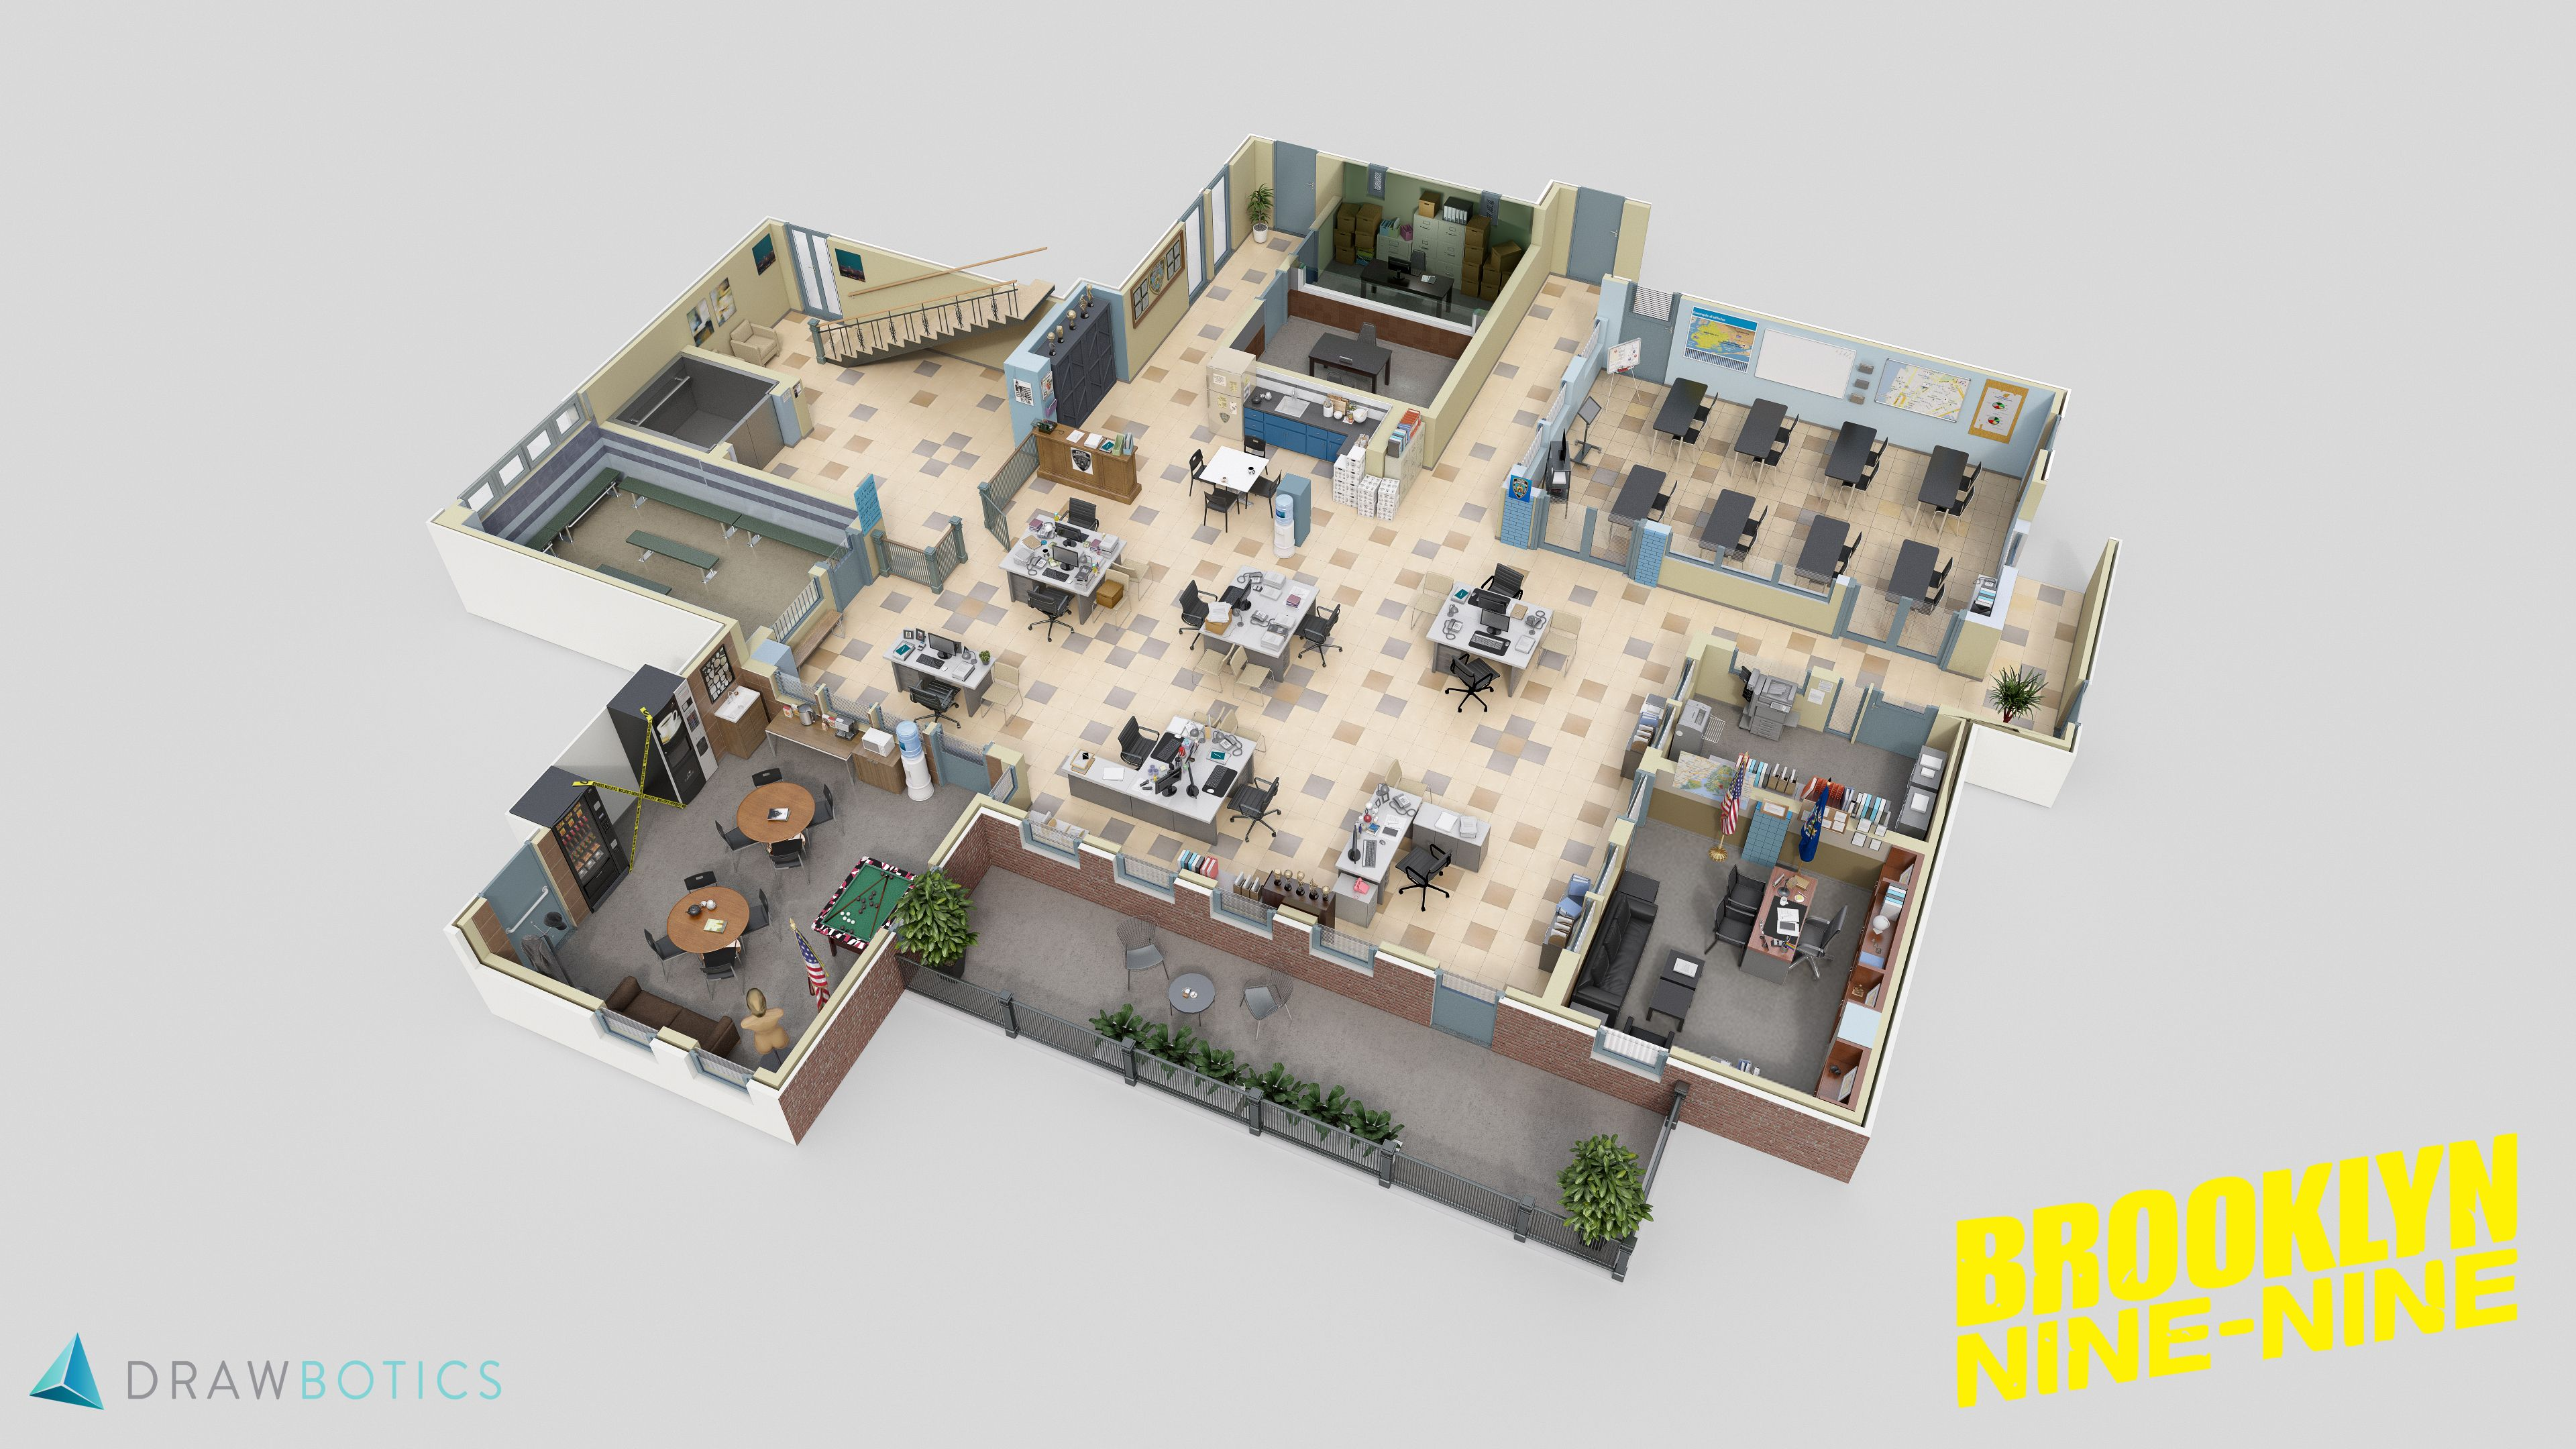 Ever wondered what itd be like to work at dunder mifflin or pearson ever wondered what itd be like to work at dunder mifflin or pearson hardman discover the 3d floor plans of your favorite tv shows in ultrahd malvernweather Image collections